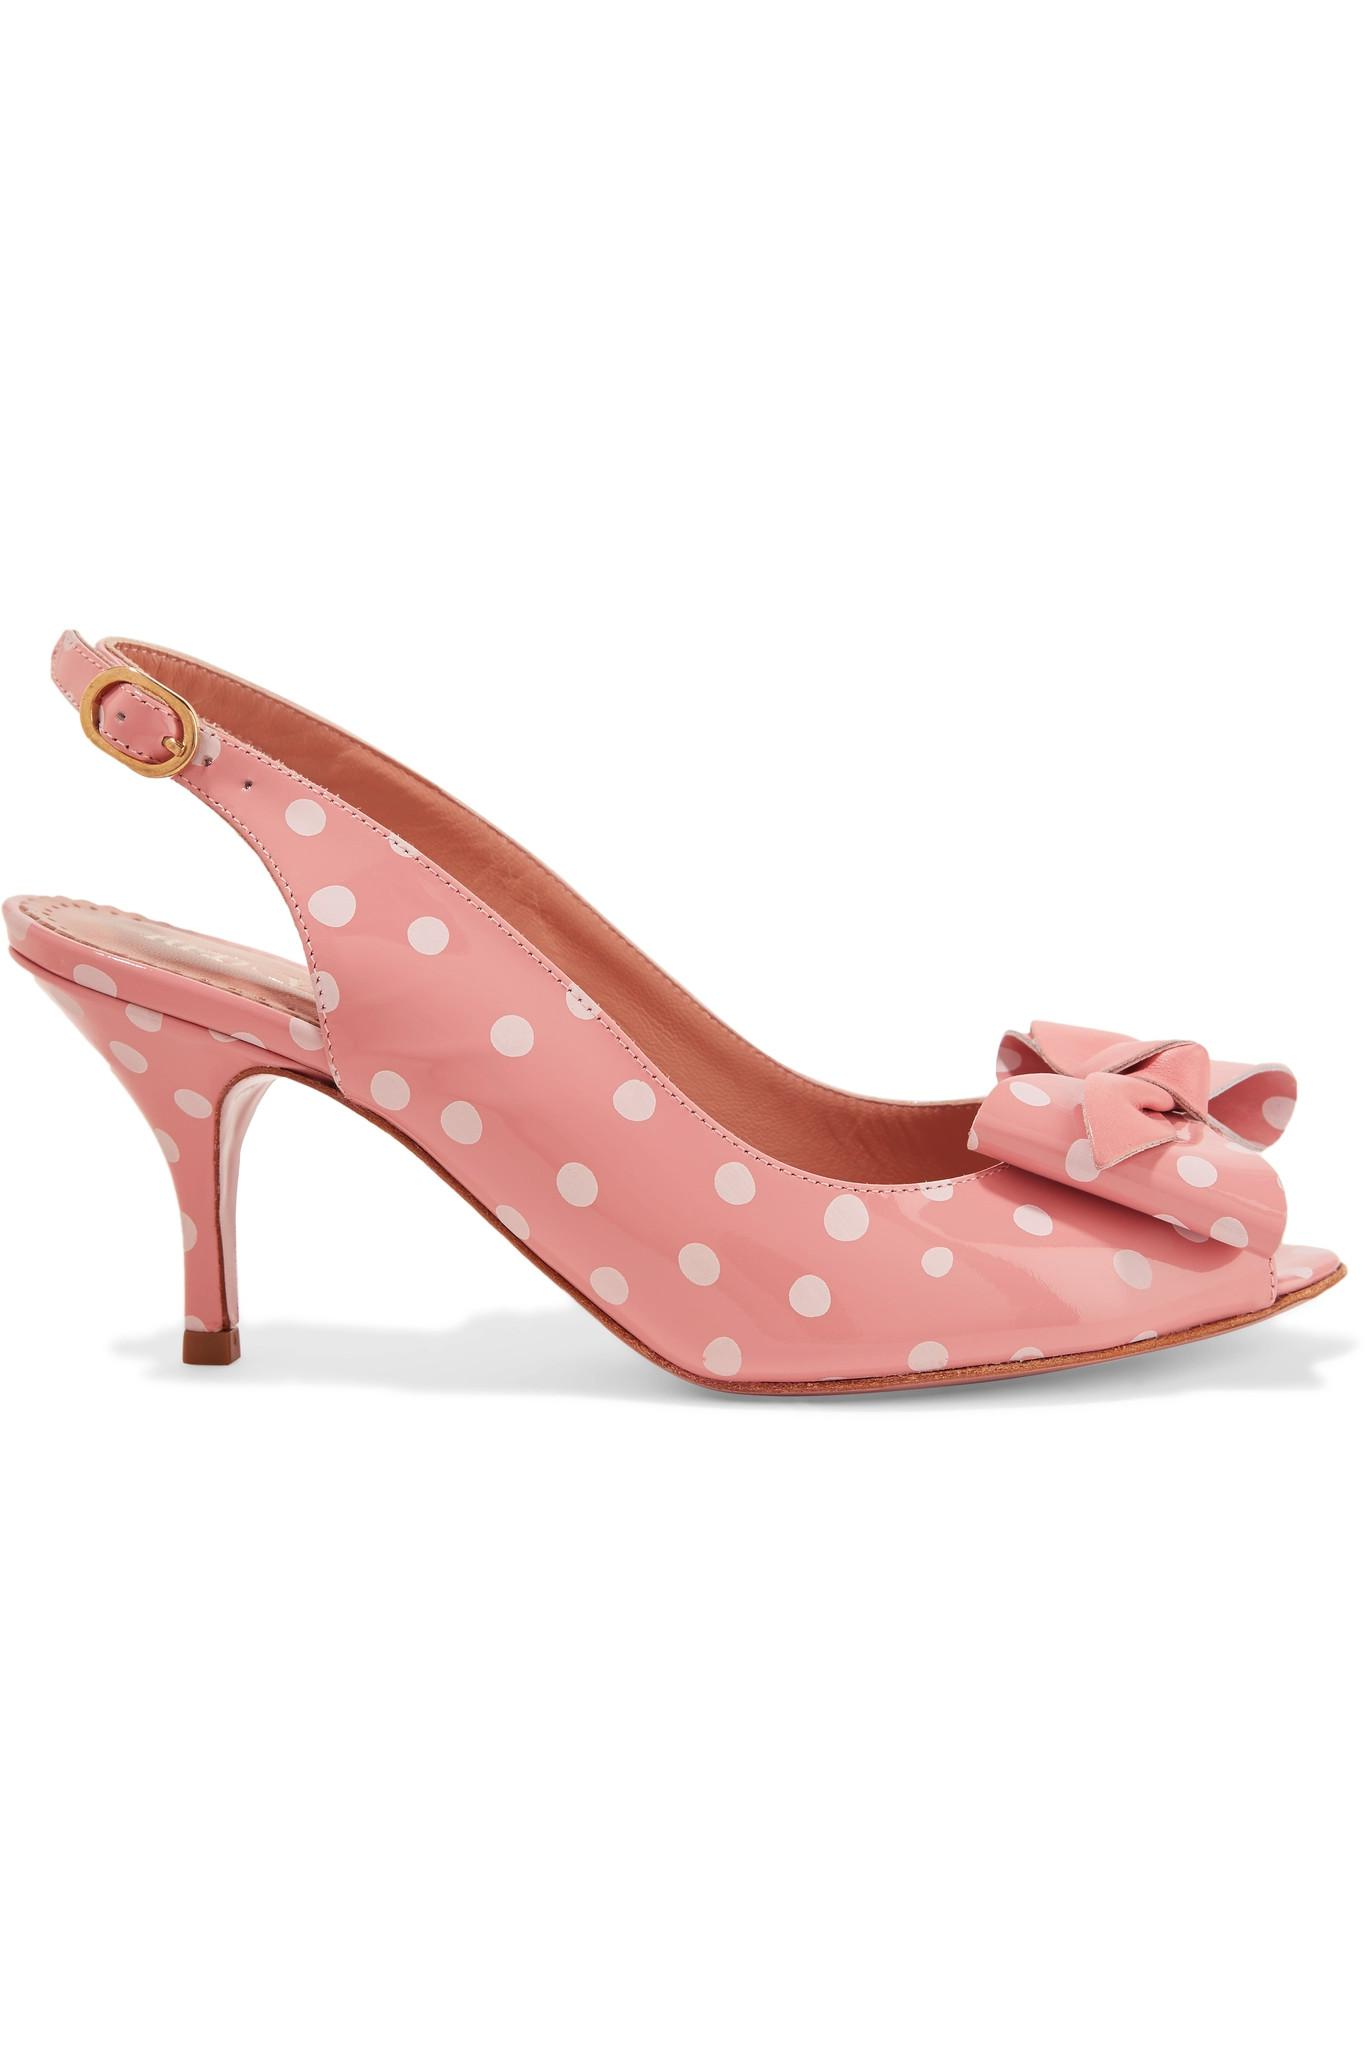 Red Valentino polka dot slingback sandals for sale top quality mjmiKfeg